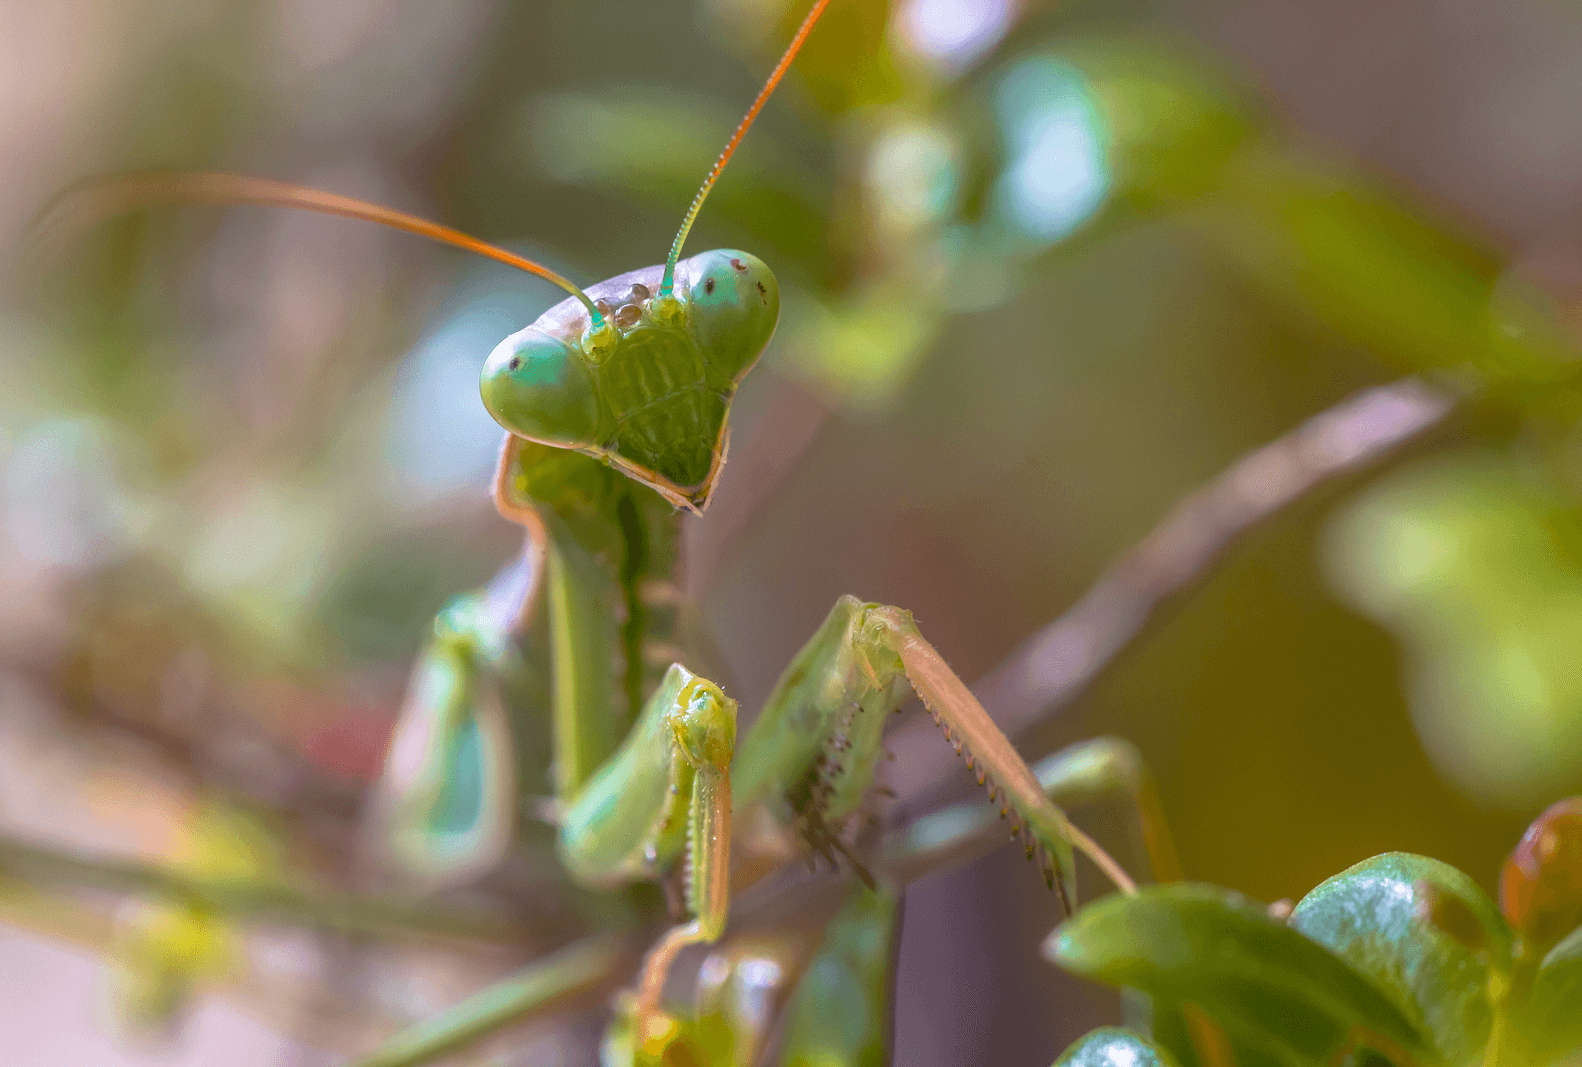 Why do female praying mantids often eat the males?